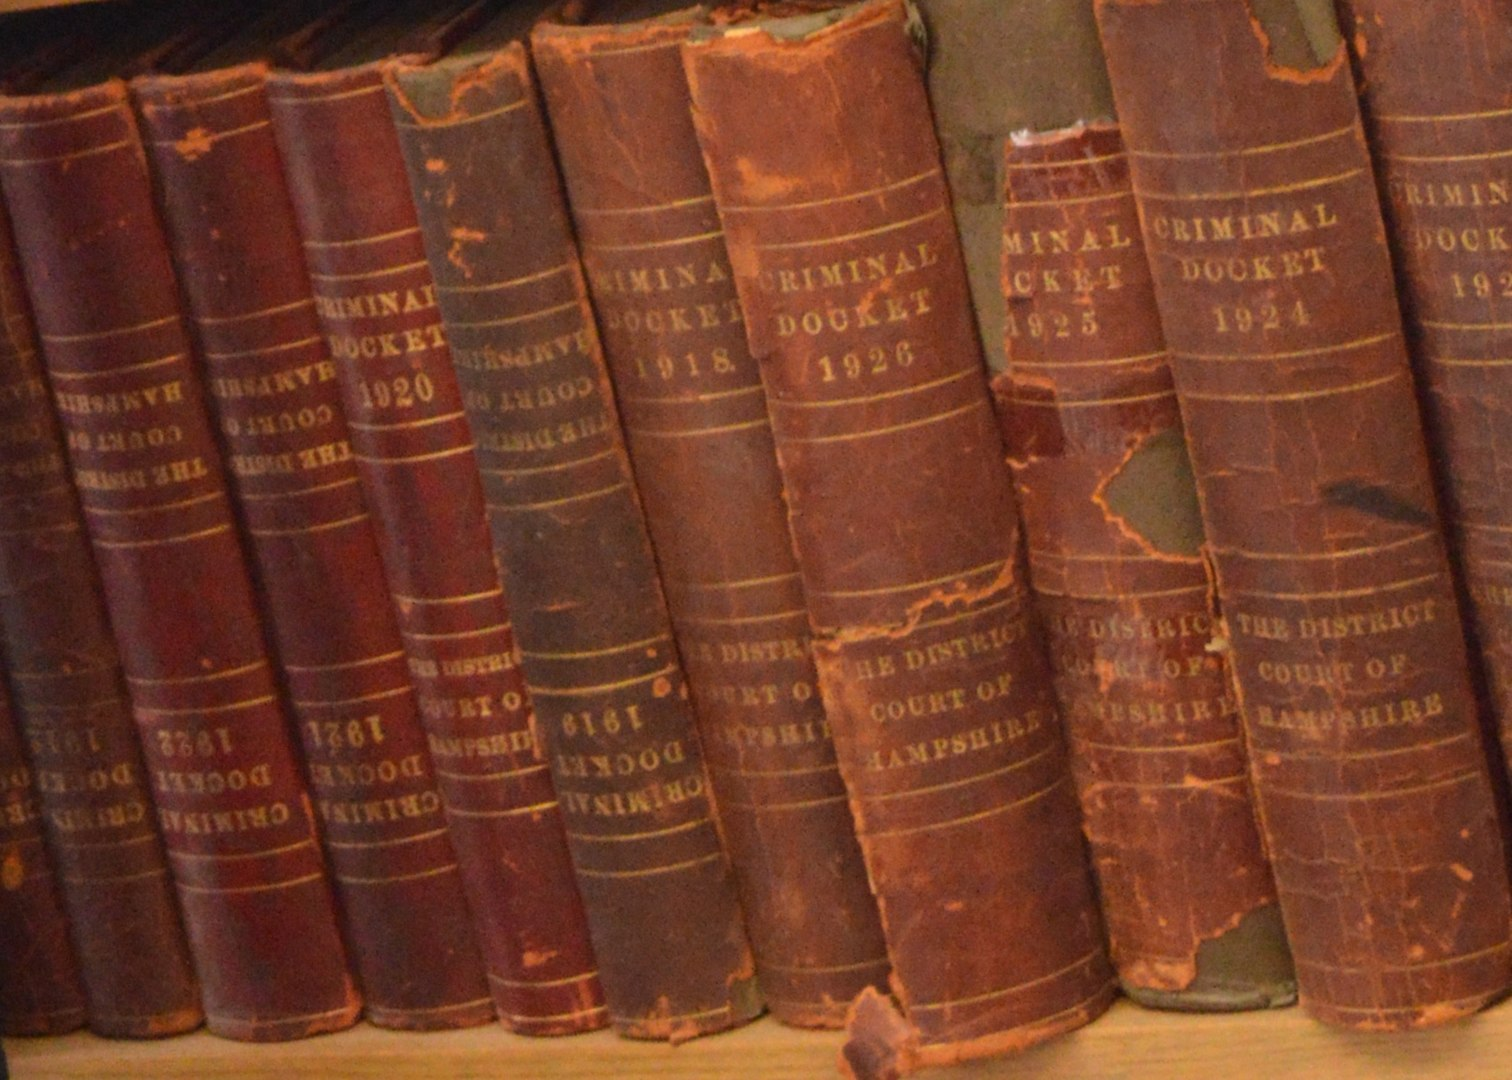 Well-used law books on a shelf